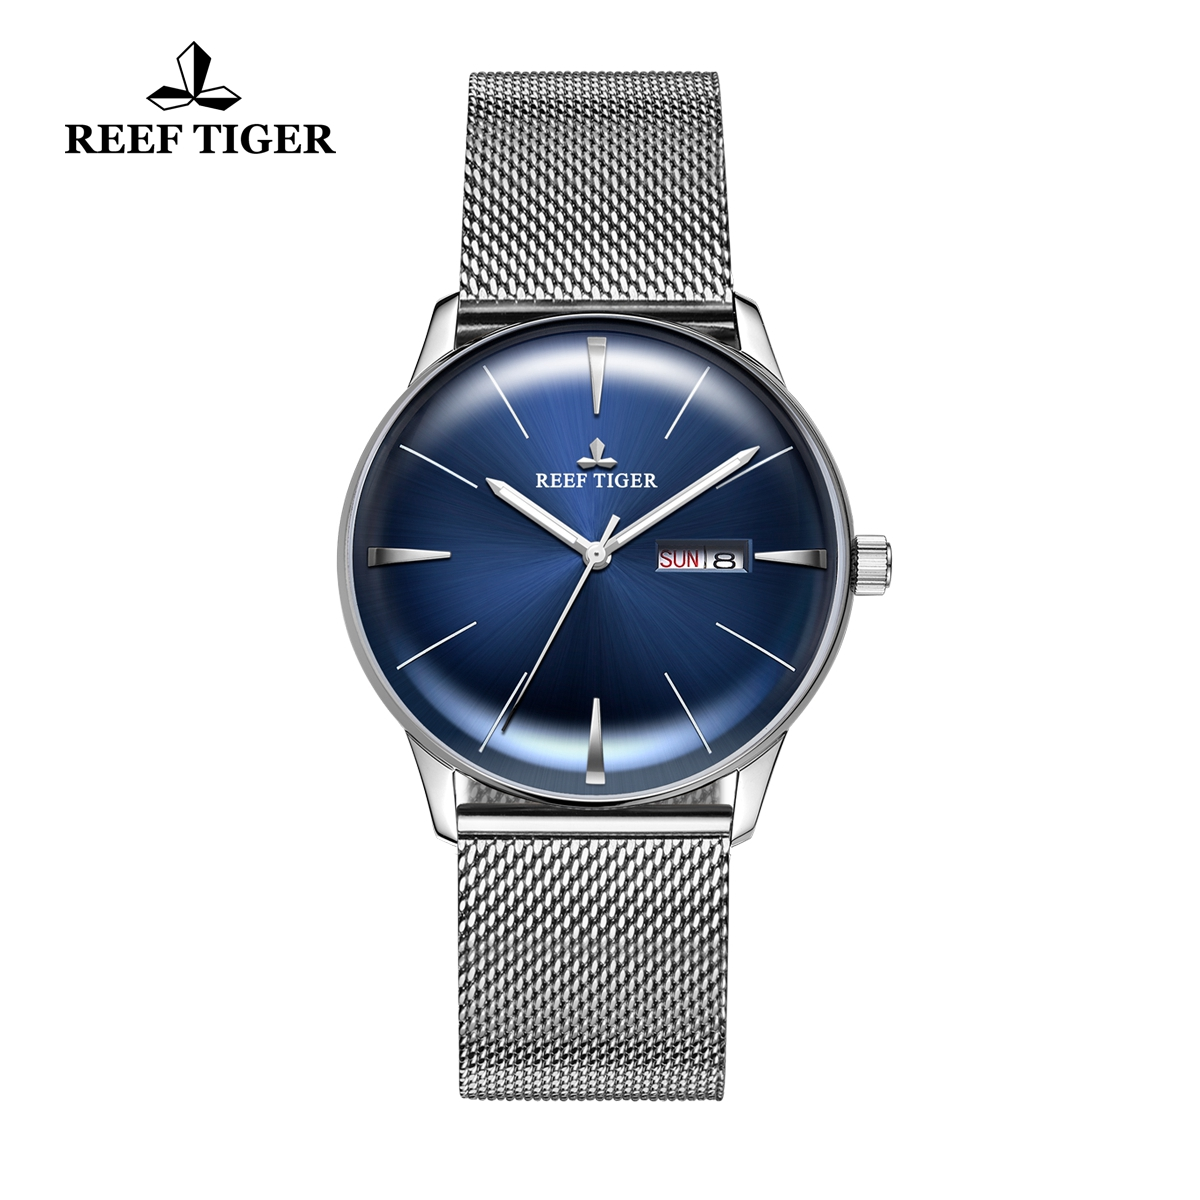 Reef Tiger Classic Heritor Fashion Automatic Watch Blue Dial Steel Watches For Men RGA8238-YLY